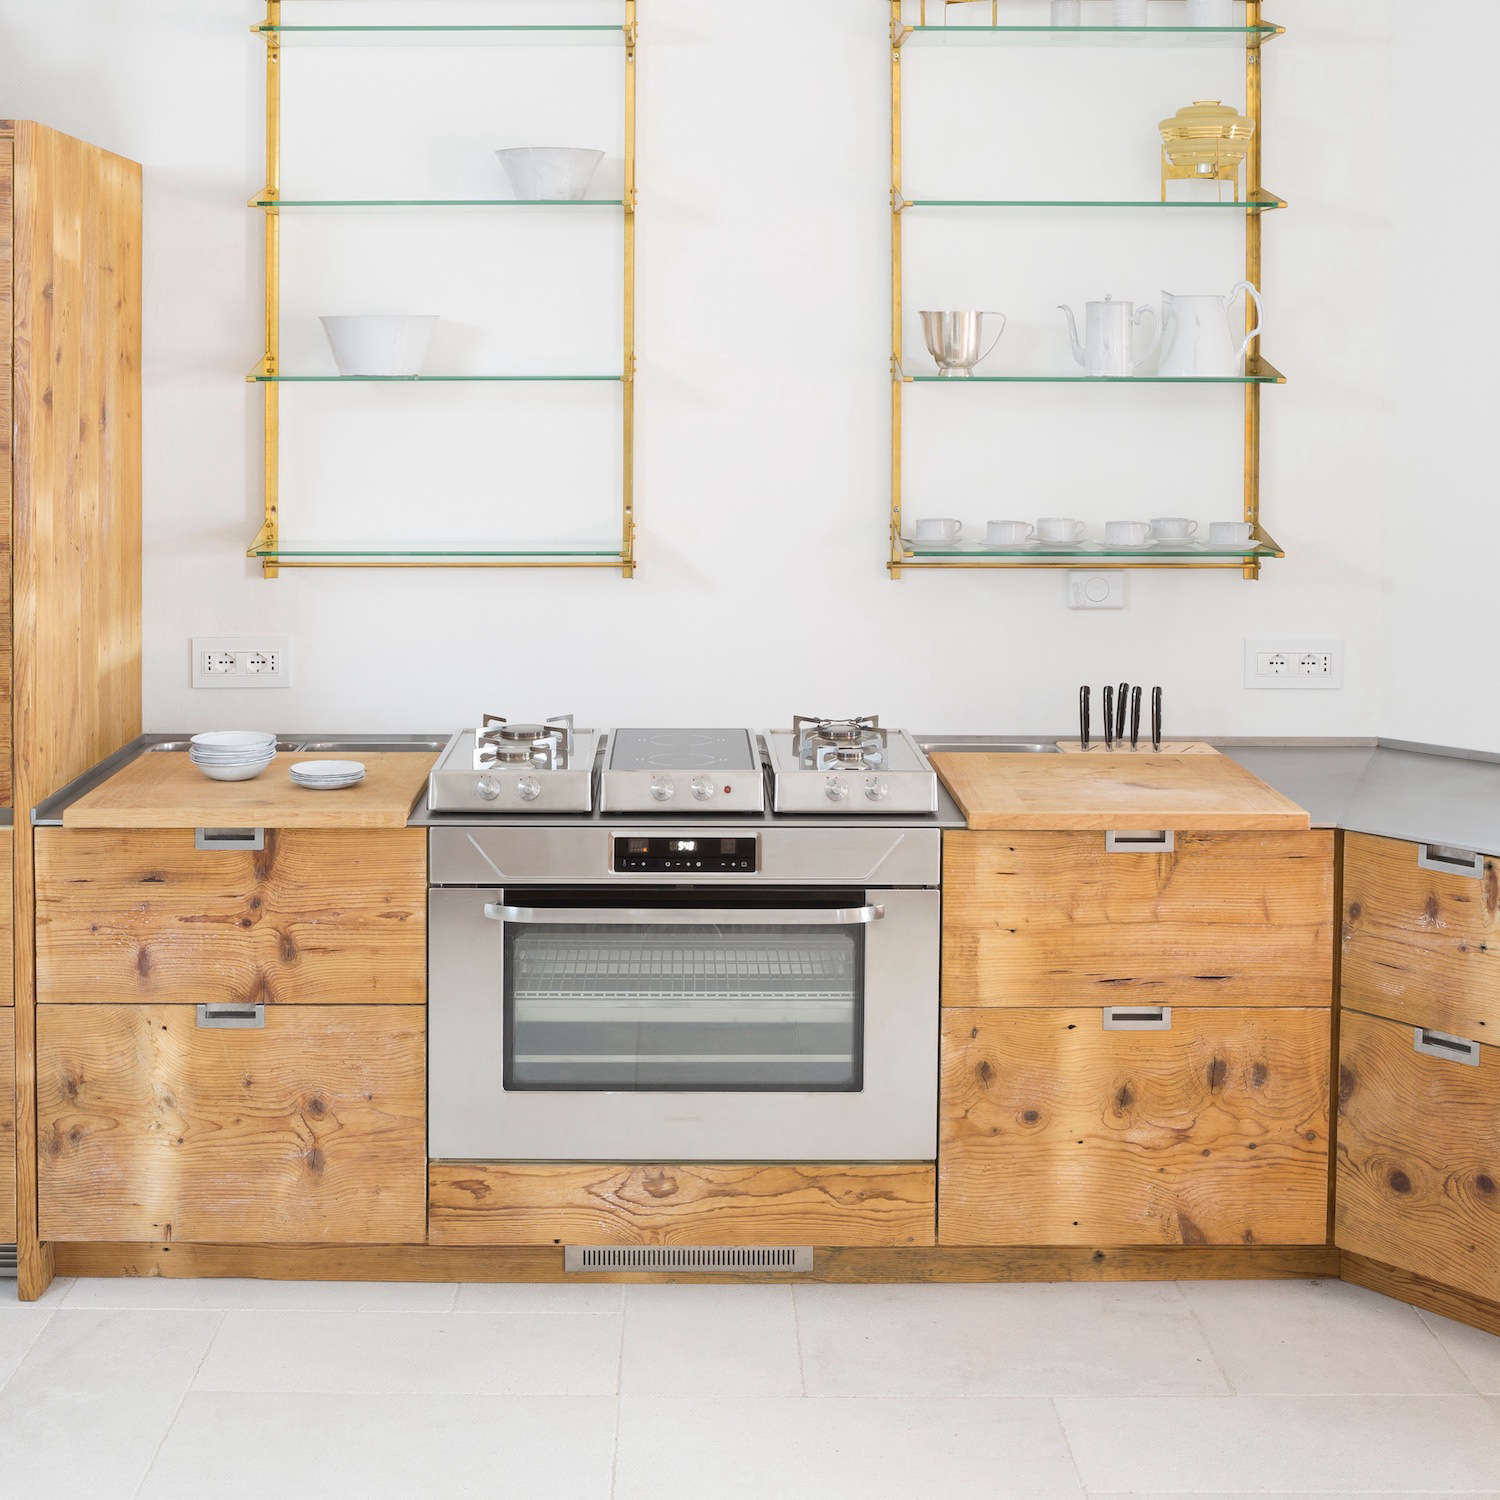 Kitchen of the Week: A Katrin Arens Design in Sardinia with 250-Year ...